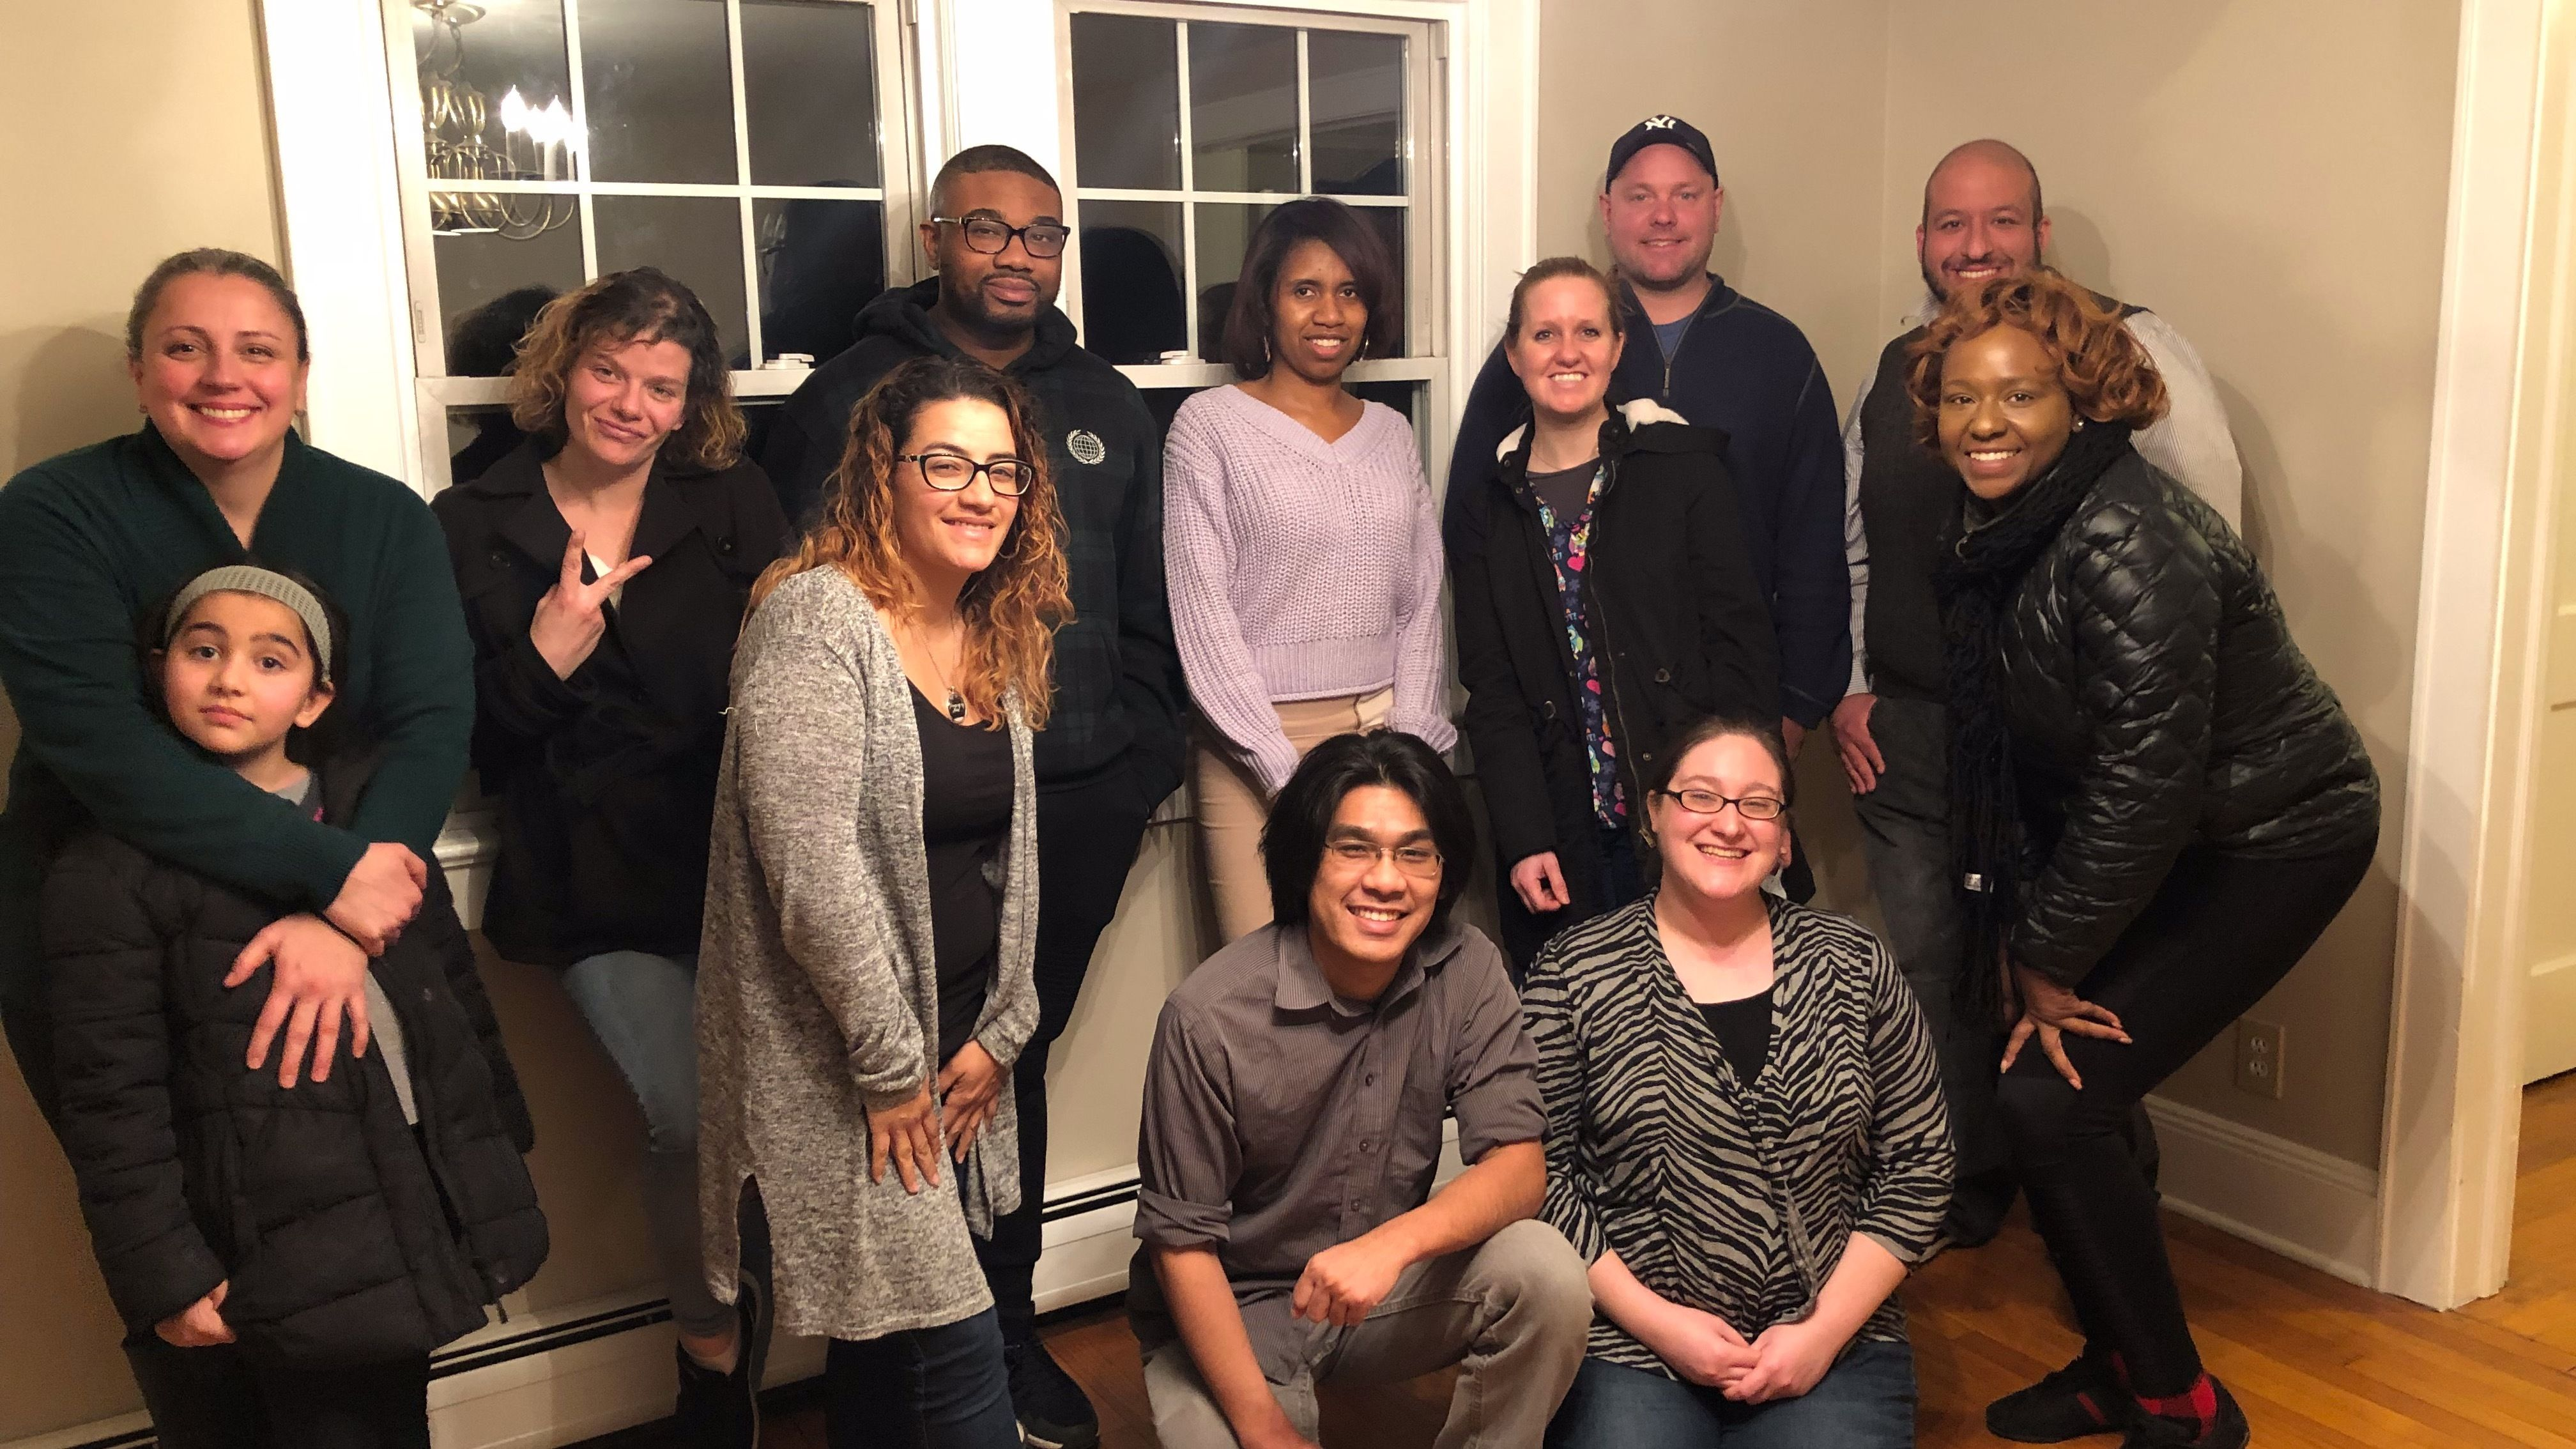 Bible Study for late 20's and 30's in Clark, NJ (Oasis)